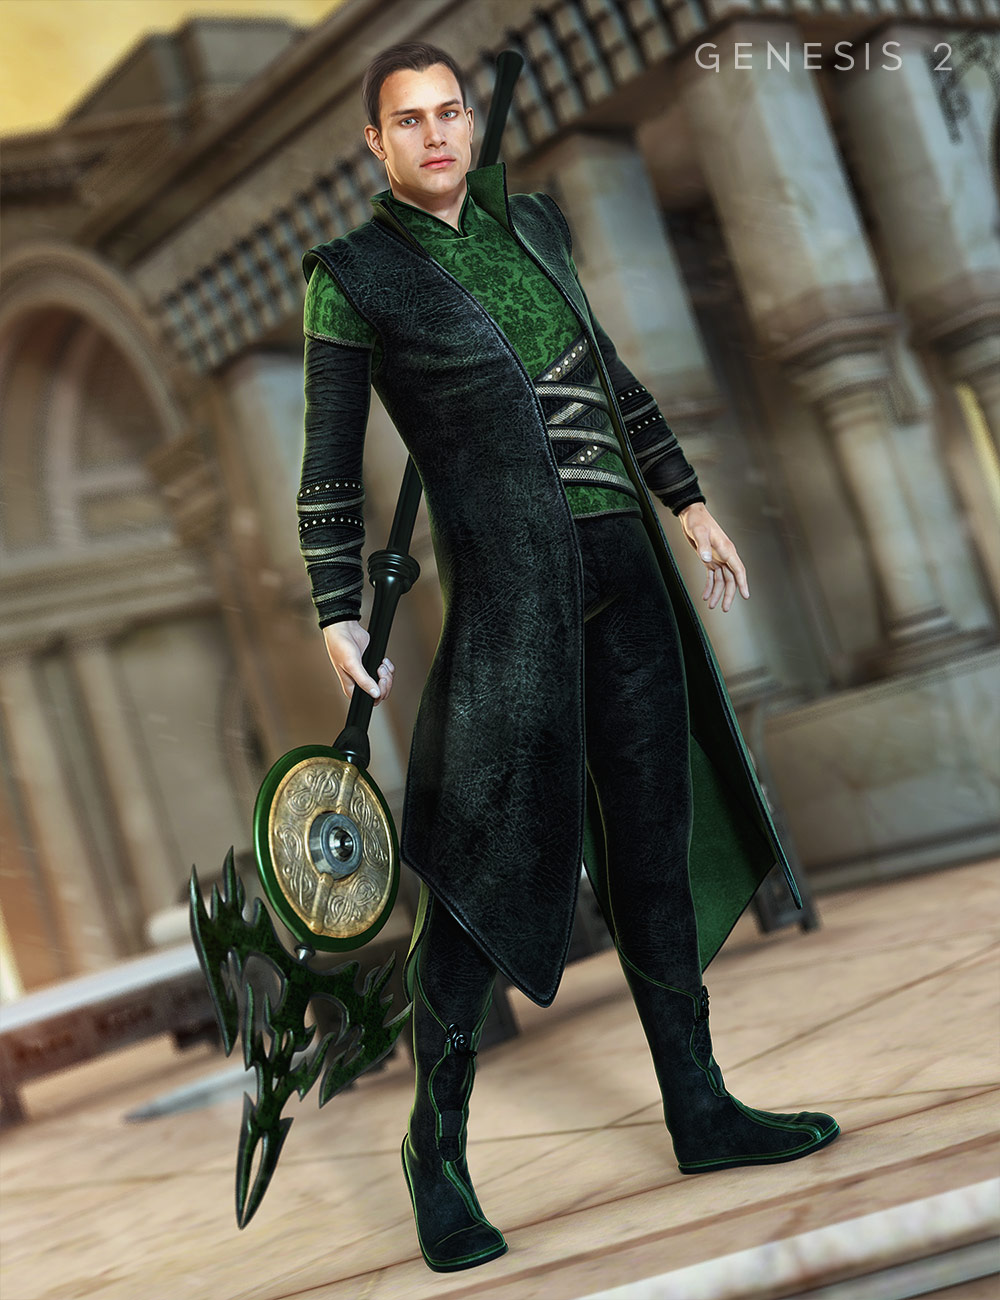 Asgard Cleric for Genesis 2 Male(s) by: MadaSarsa, 3D Models by Daz 3D